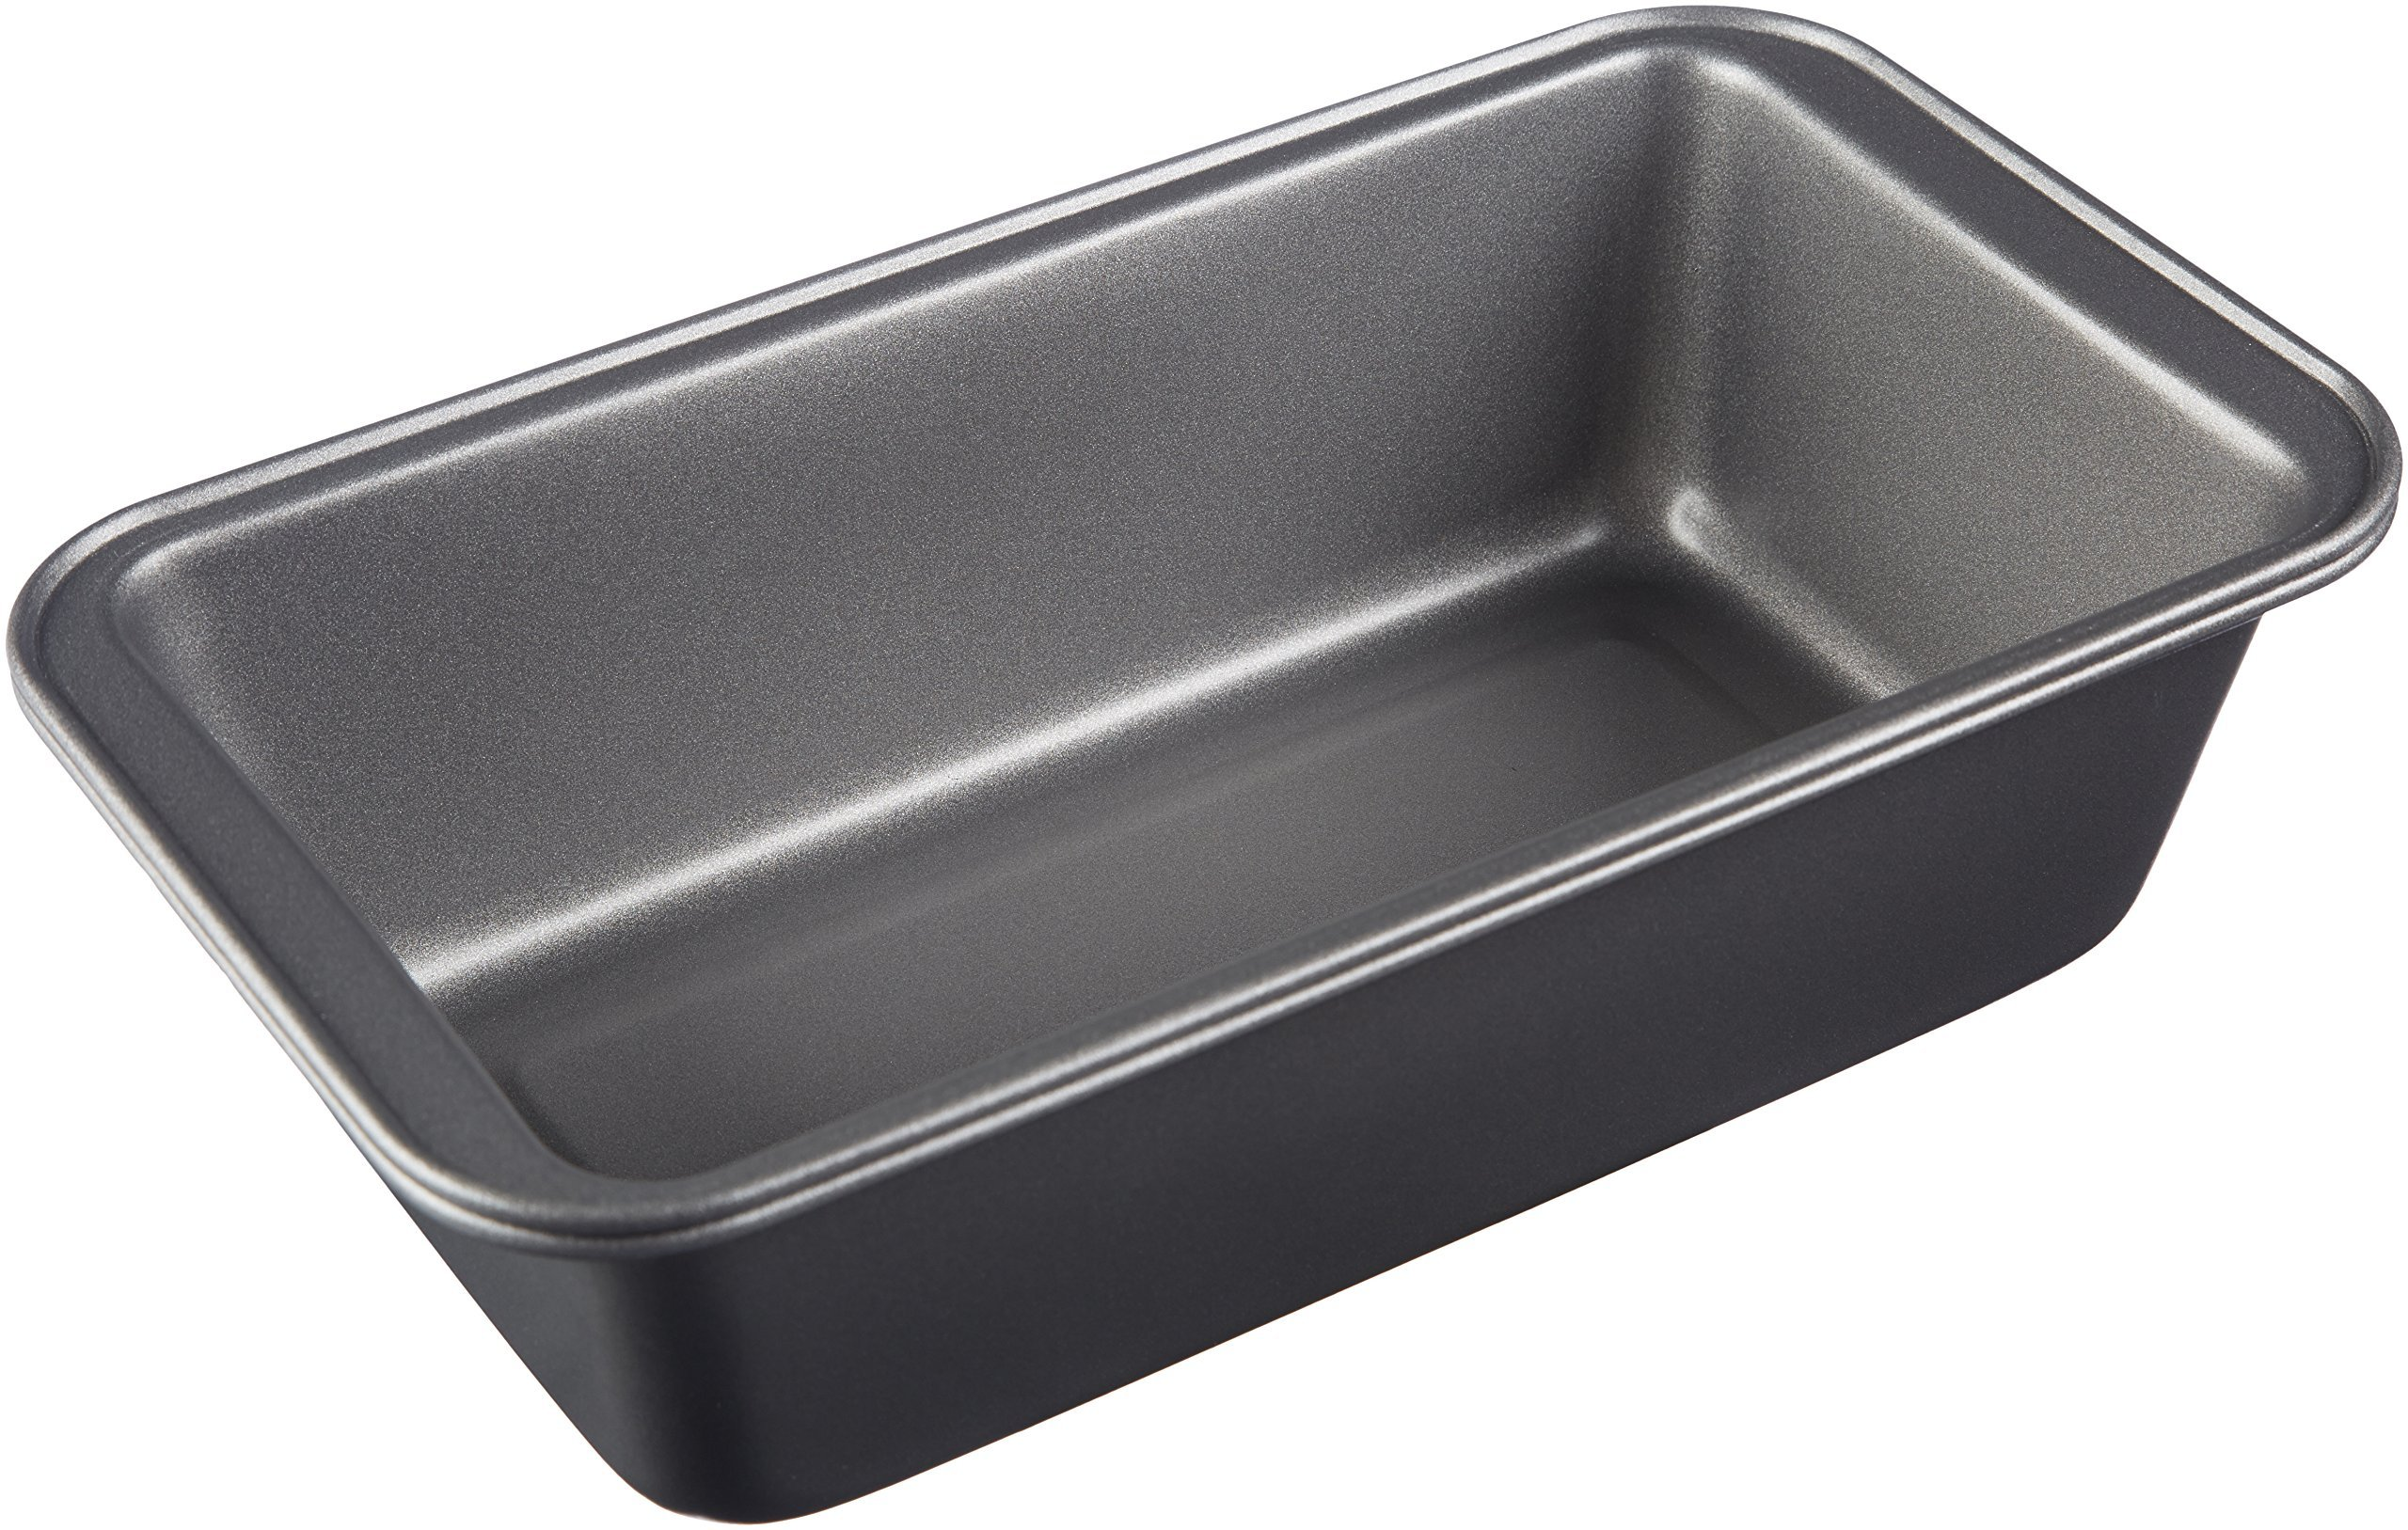 AmazonBasics Nonstick Carbon Steel Bread Pan - 9.5'' x 5'', 2-Pack by AmazonBasics (Image #3)